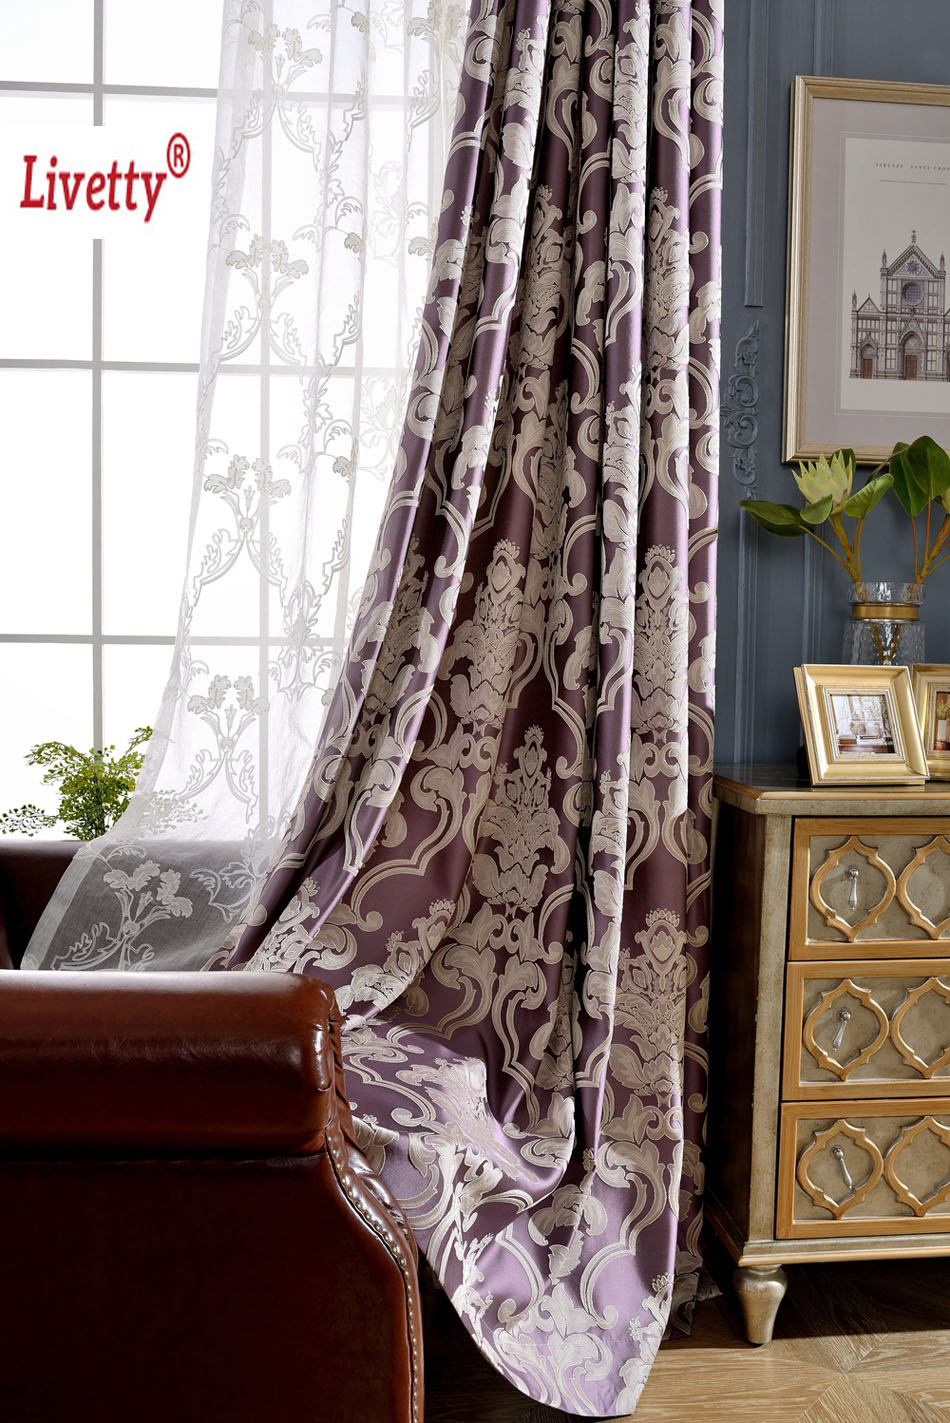 Blackout curtains for bedroom - 2016 New Luxury Blackout Curtains Drapes For Living Room Bedroom Purple Jacquard Blinds Fabric European Window